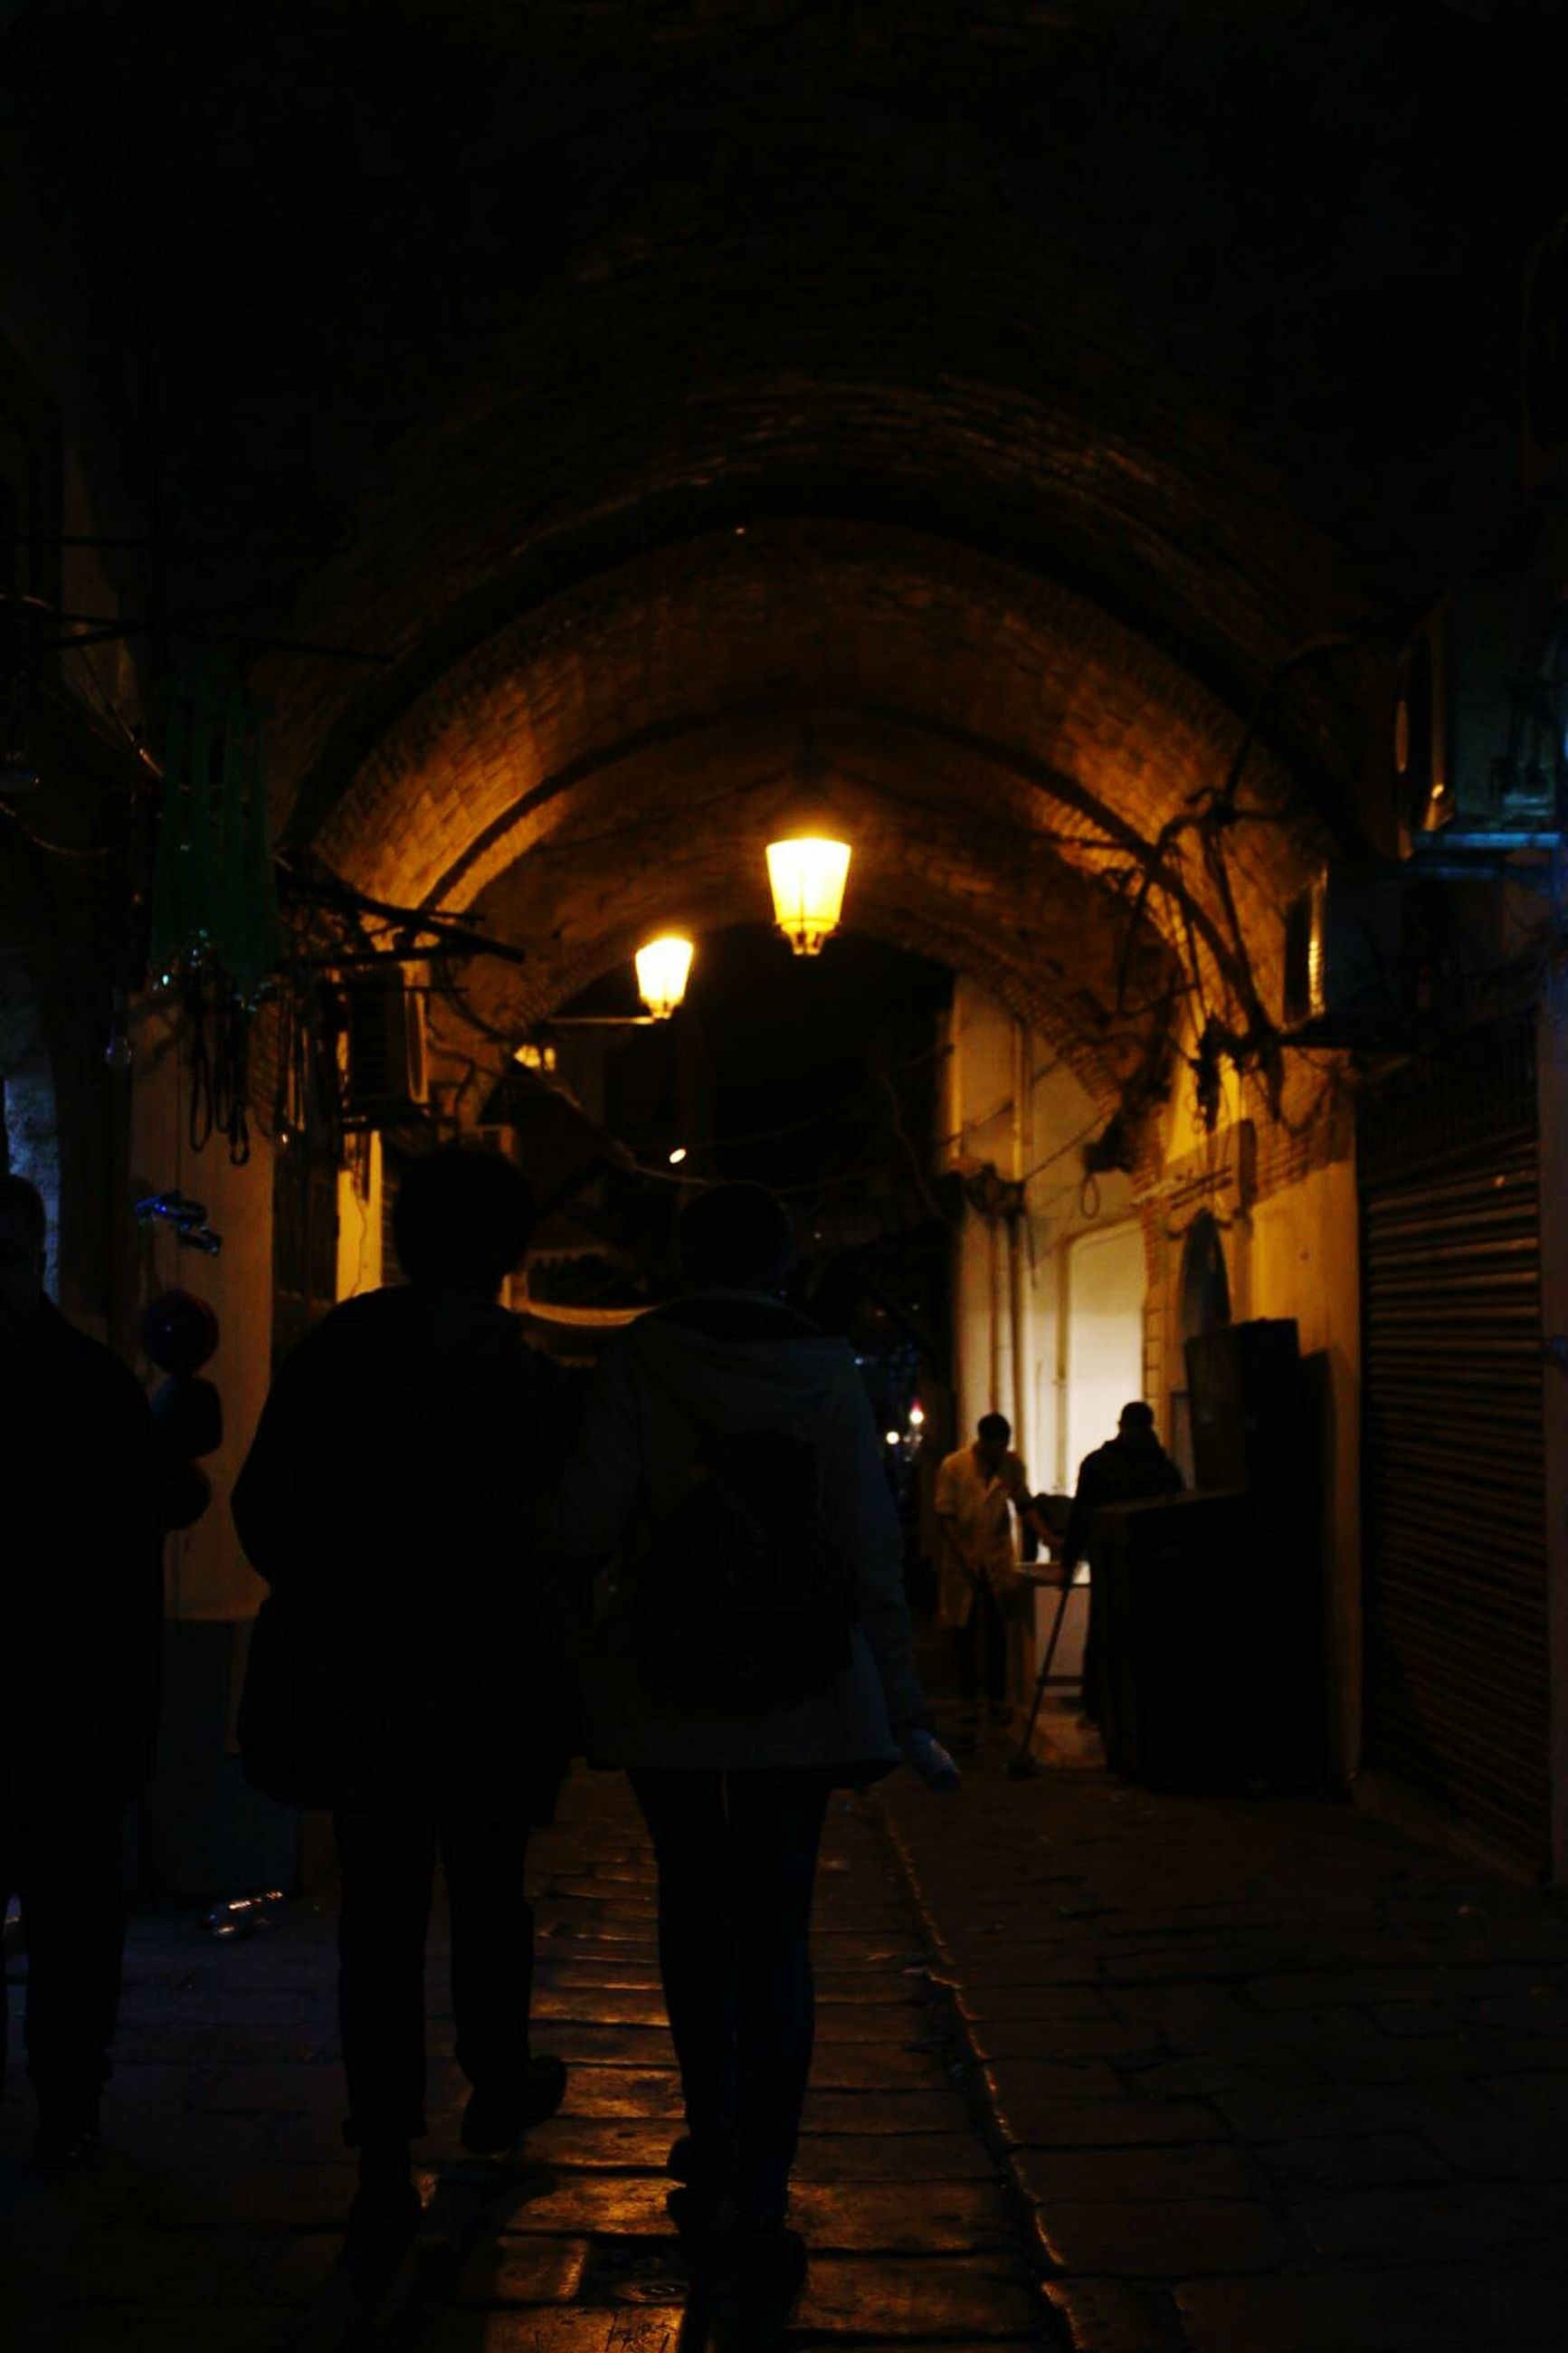 illuminated, walking, night, architecture, built structure, men, city, people, outdoors, adult, adults only